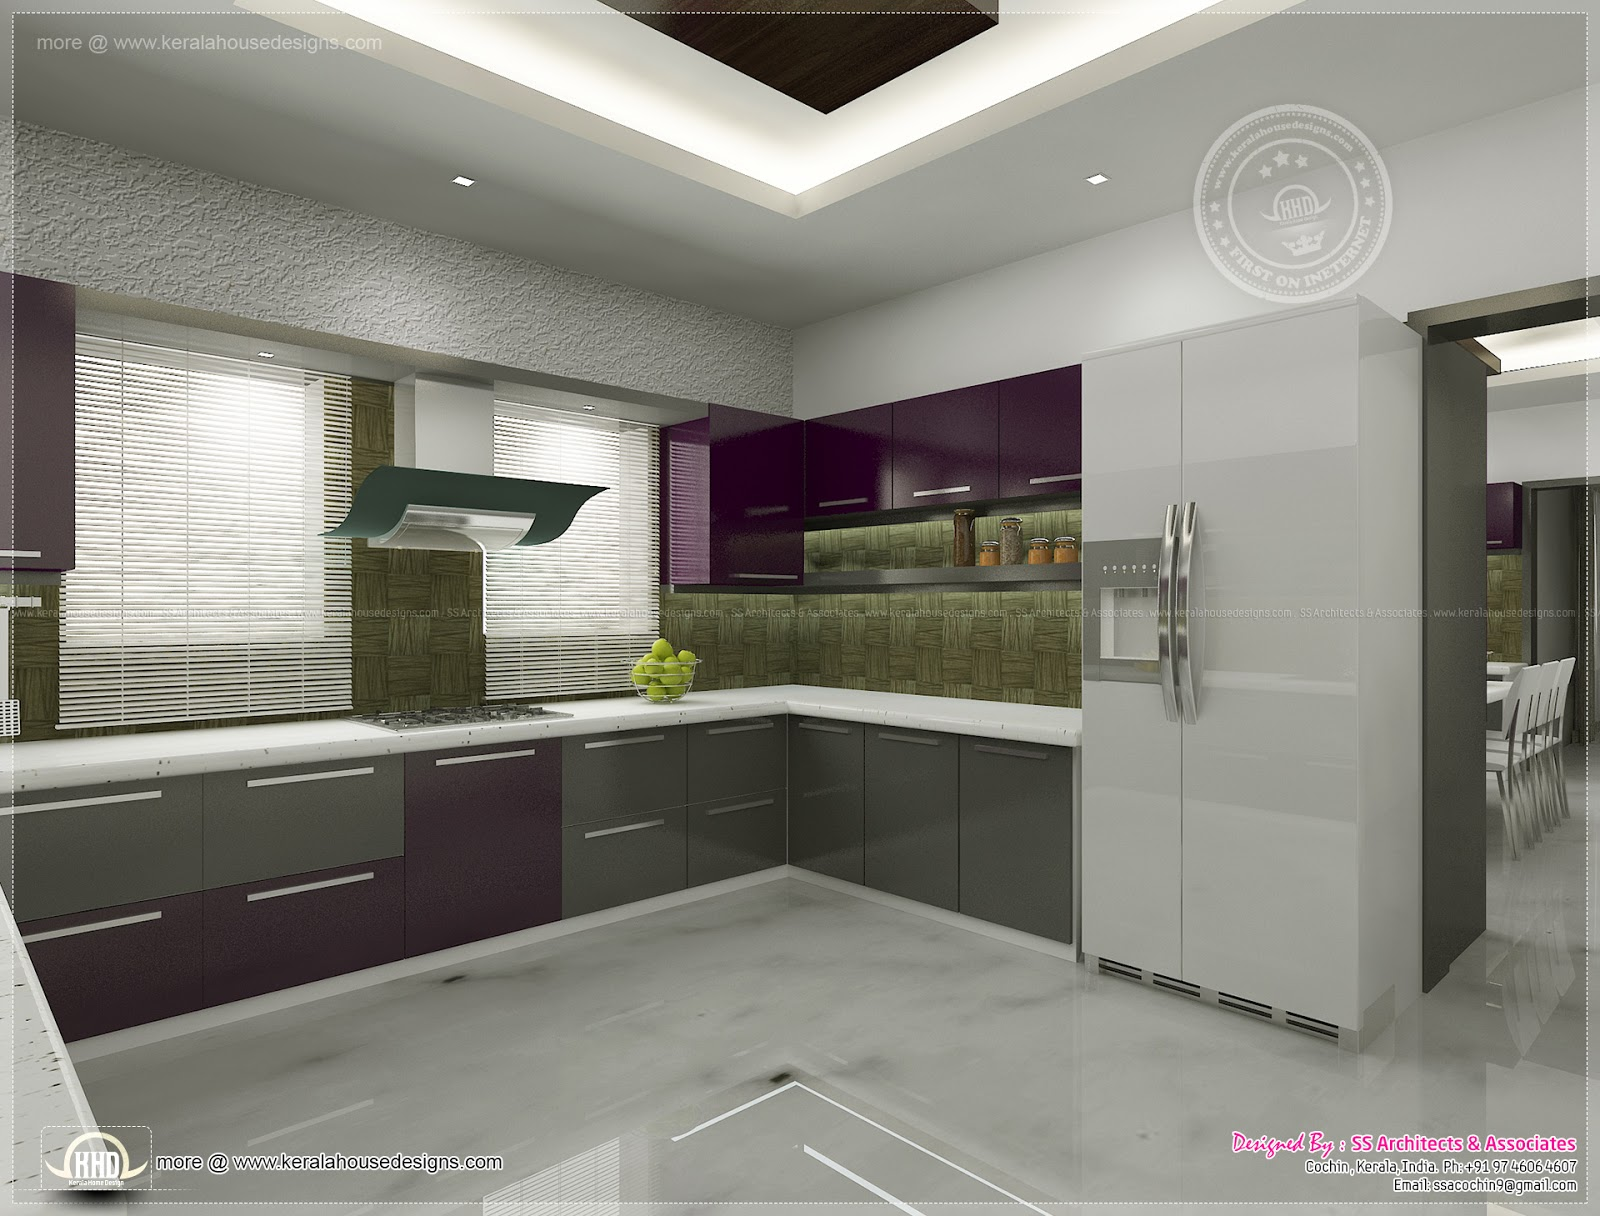 Kitchen interior views by ss architects cochin kerala for House kitchen design photos